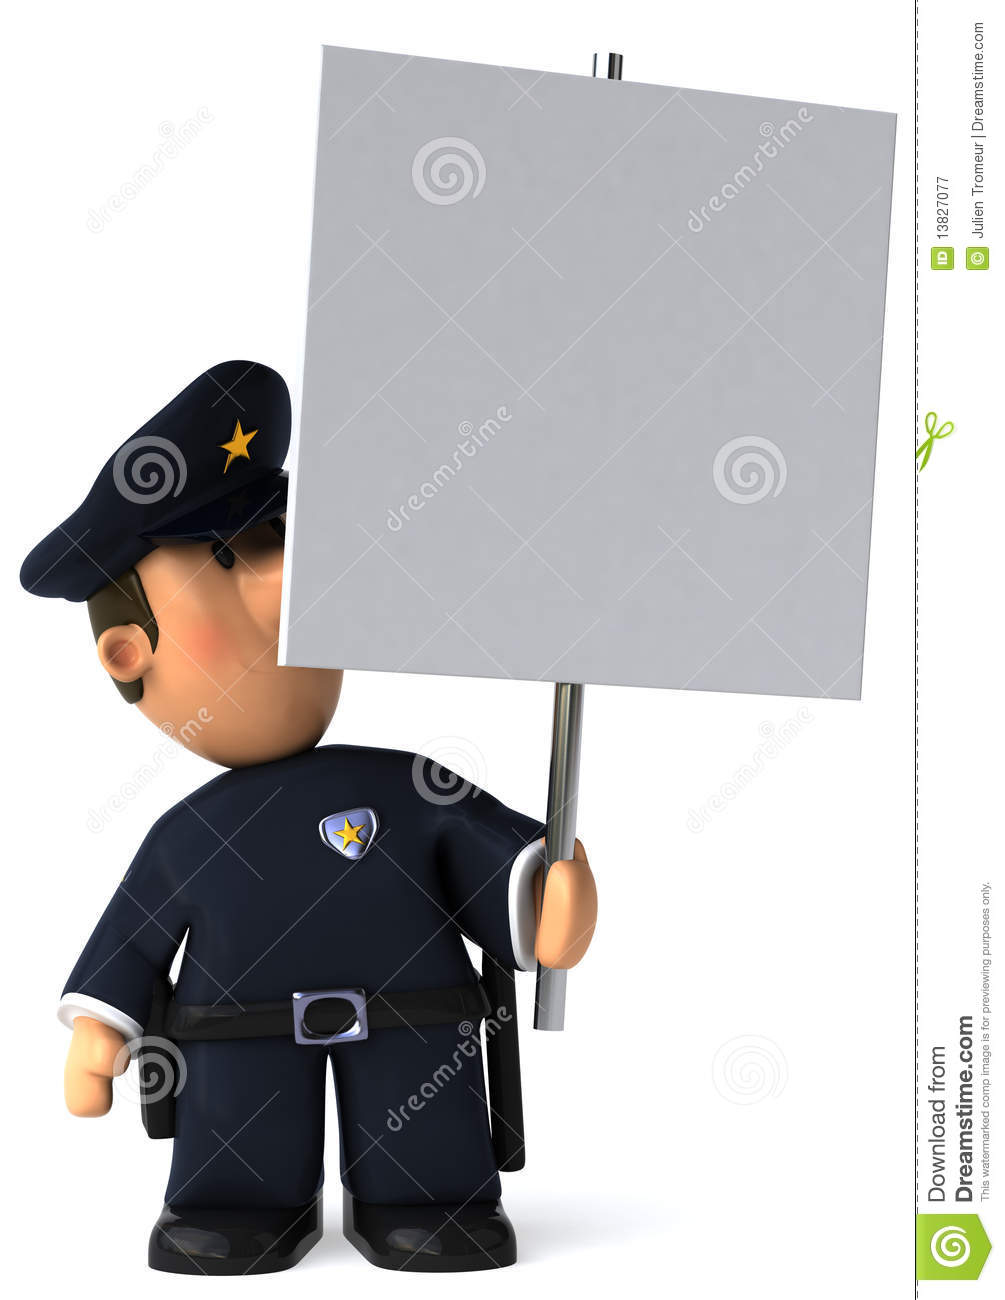 Police Officer Royalty Free Stock Photography   Image  13827077